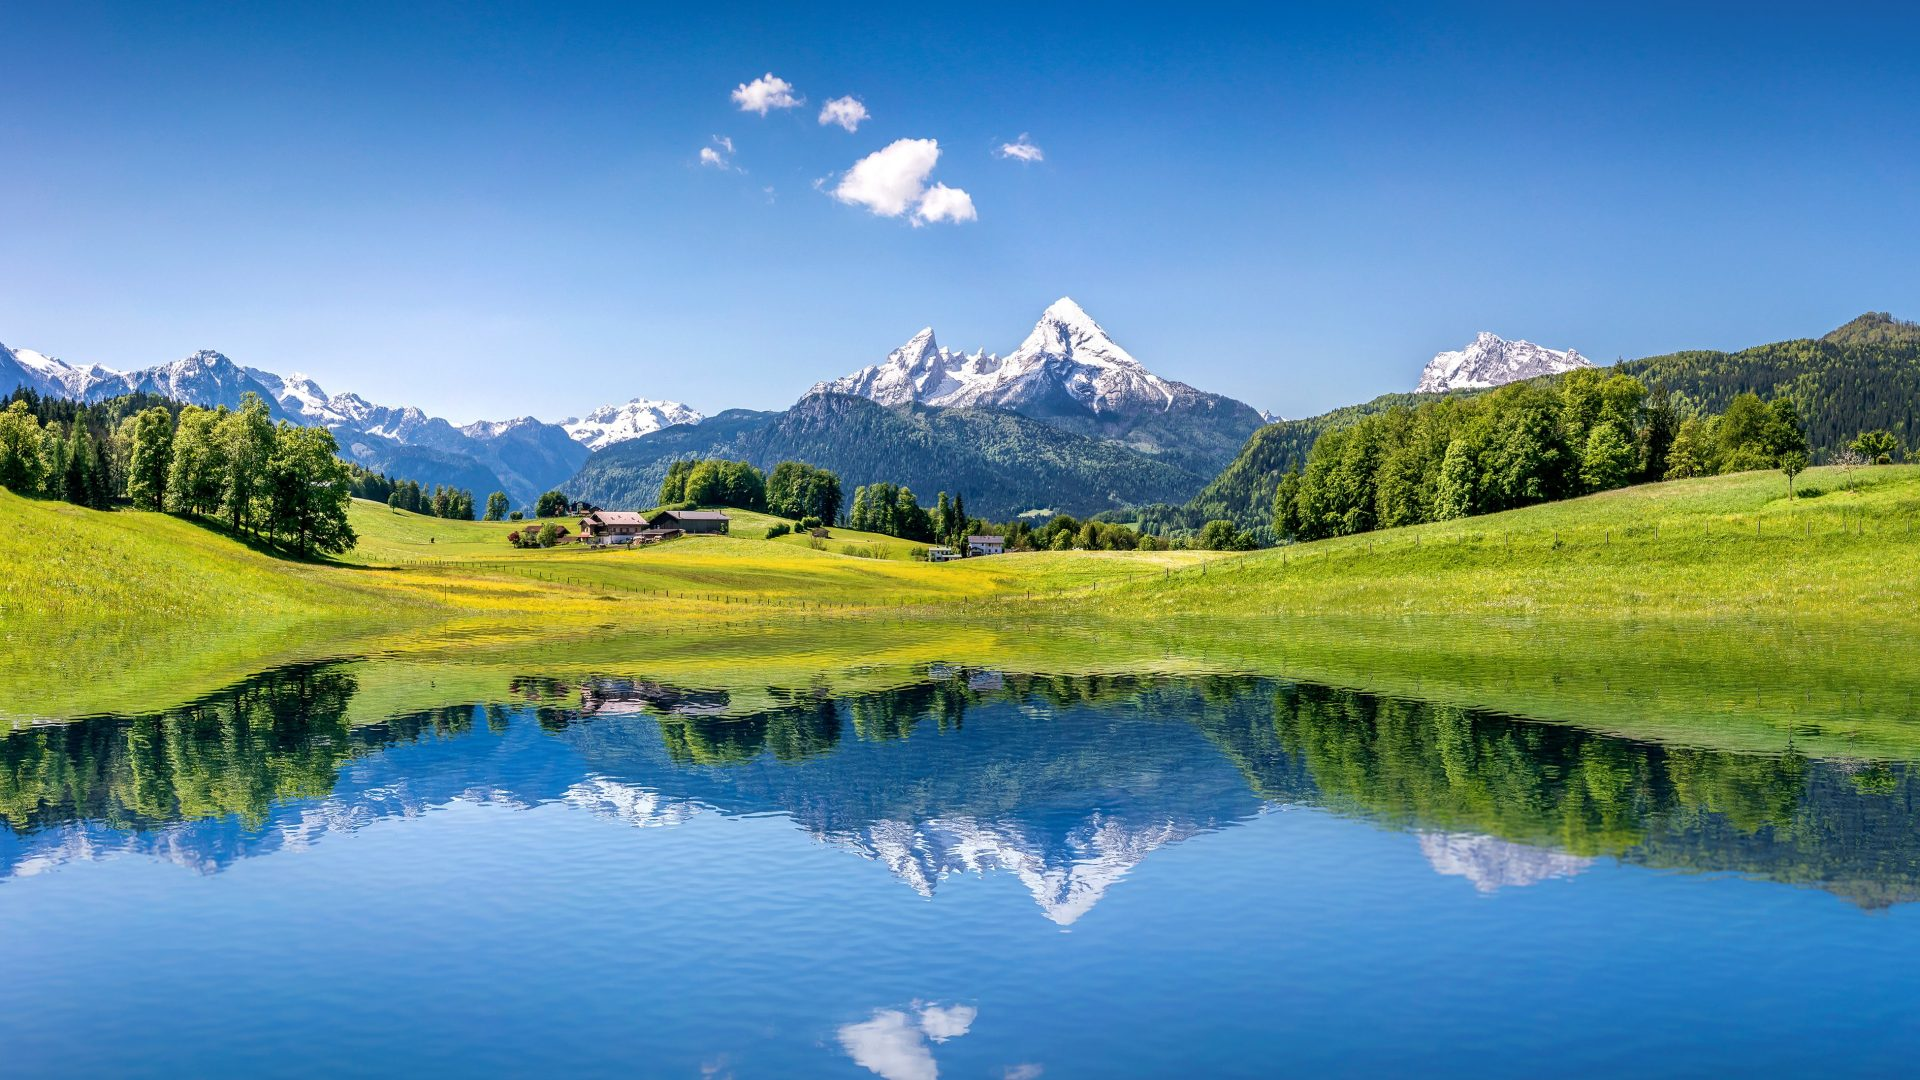 lakes-nature-sky-switzerland-lake-grasslands-alps-scenery-mountains